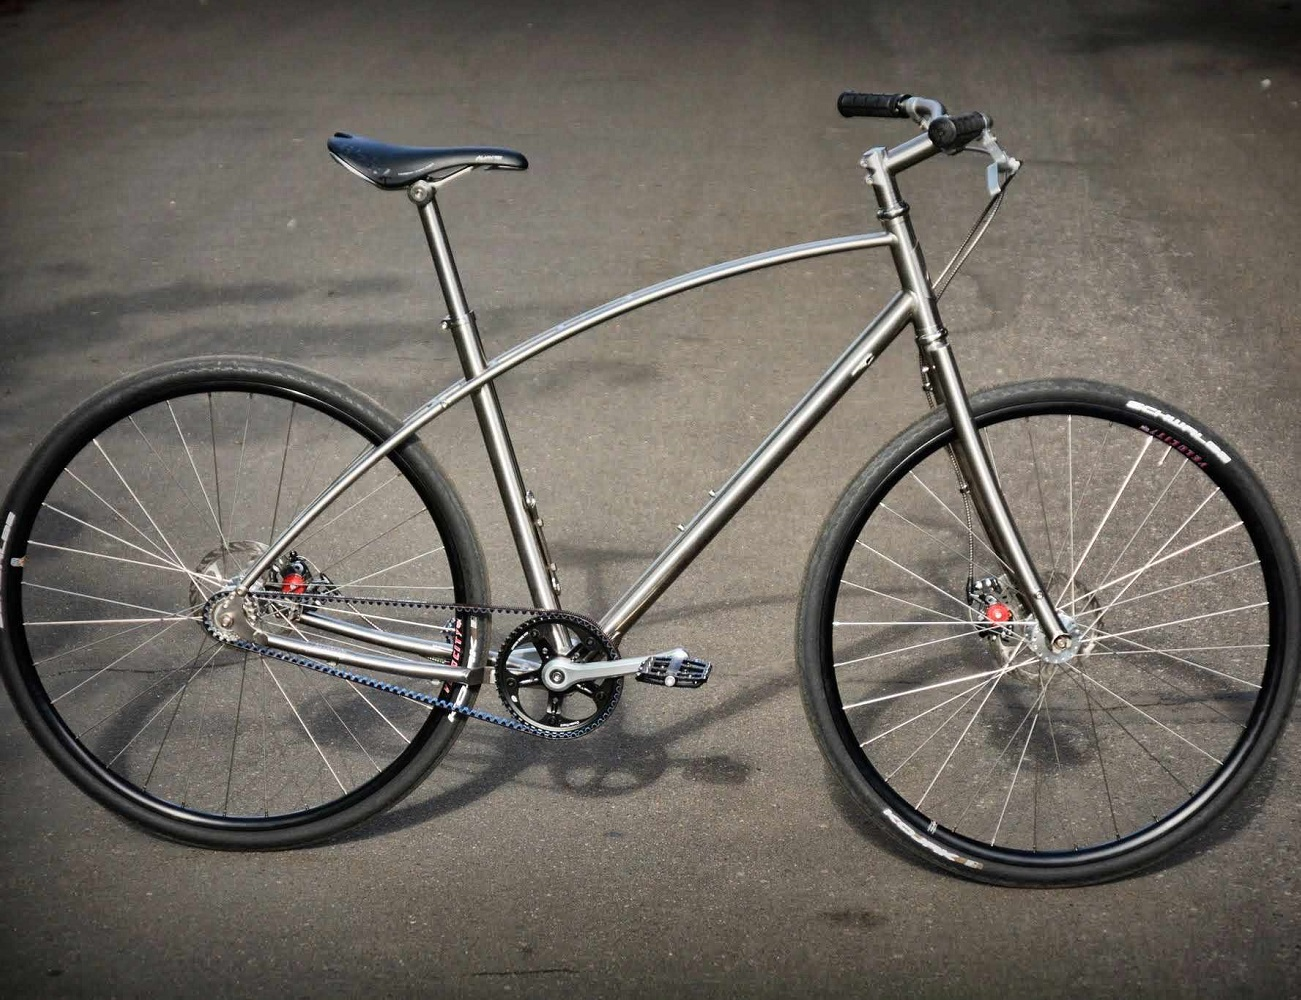 N0.1 Titanium Bike by Budnitz Bicycles